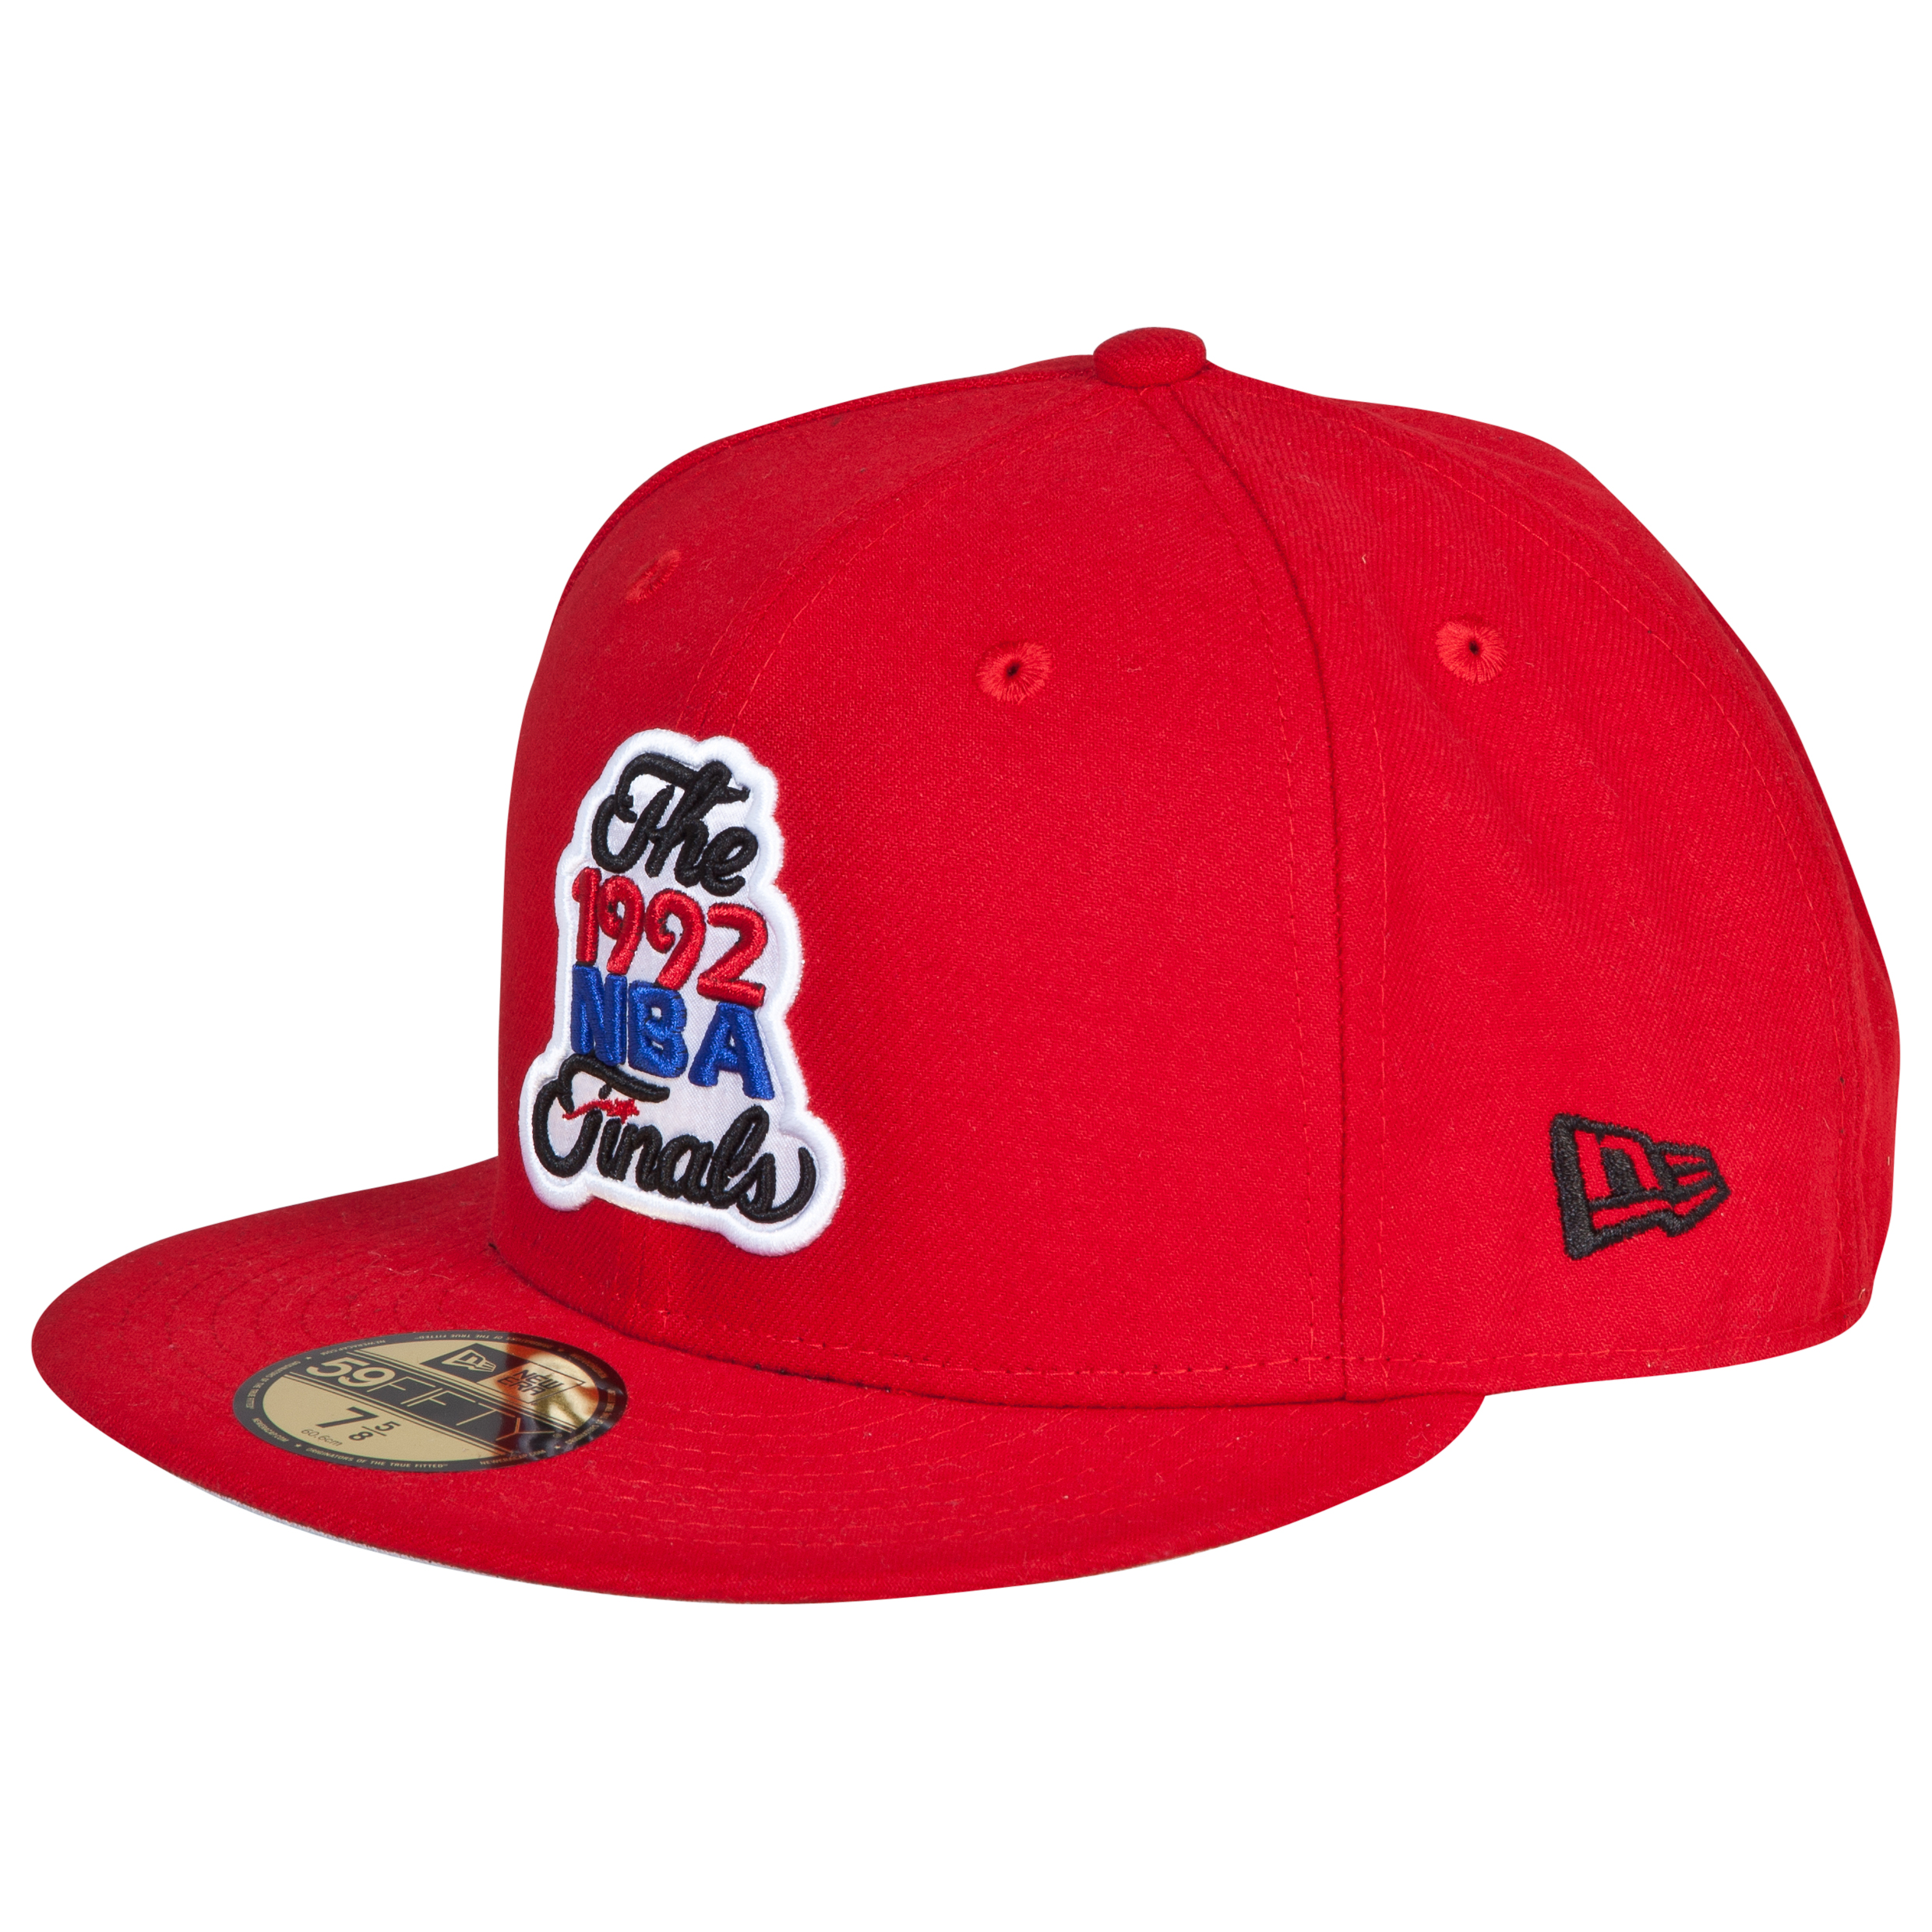 Chicago Bulls New Era Hardwood Classics 1992 59FIFTY Fitted Cap